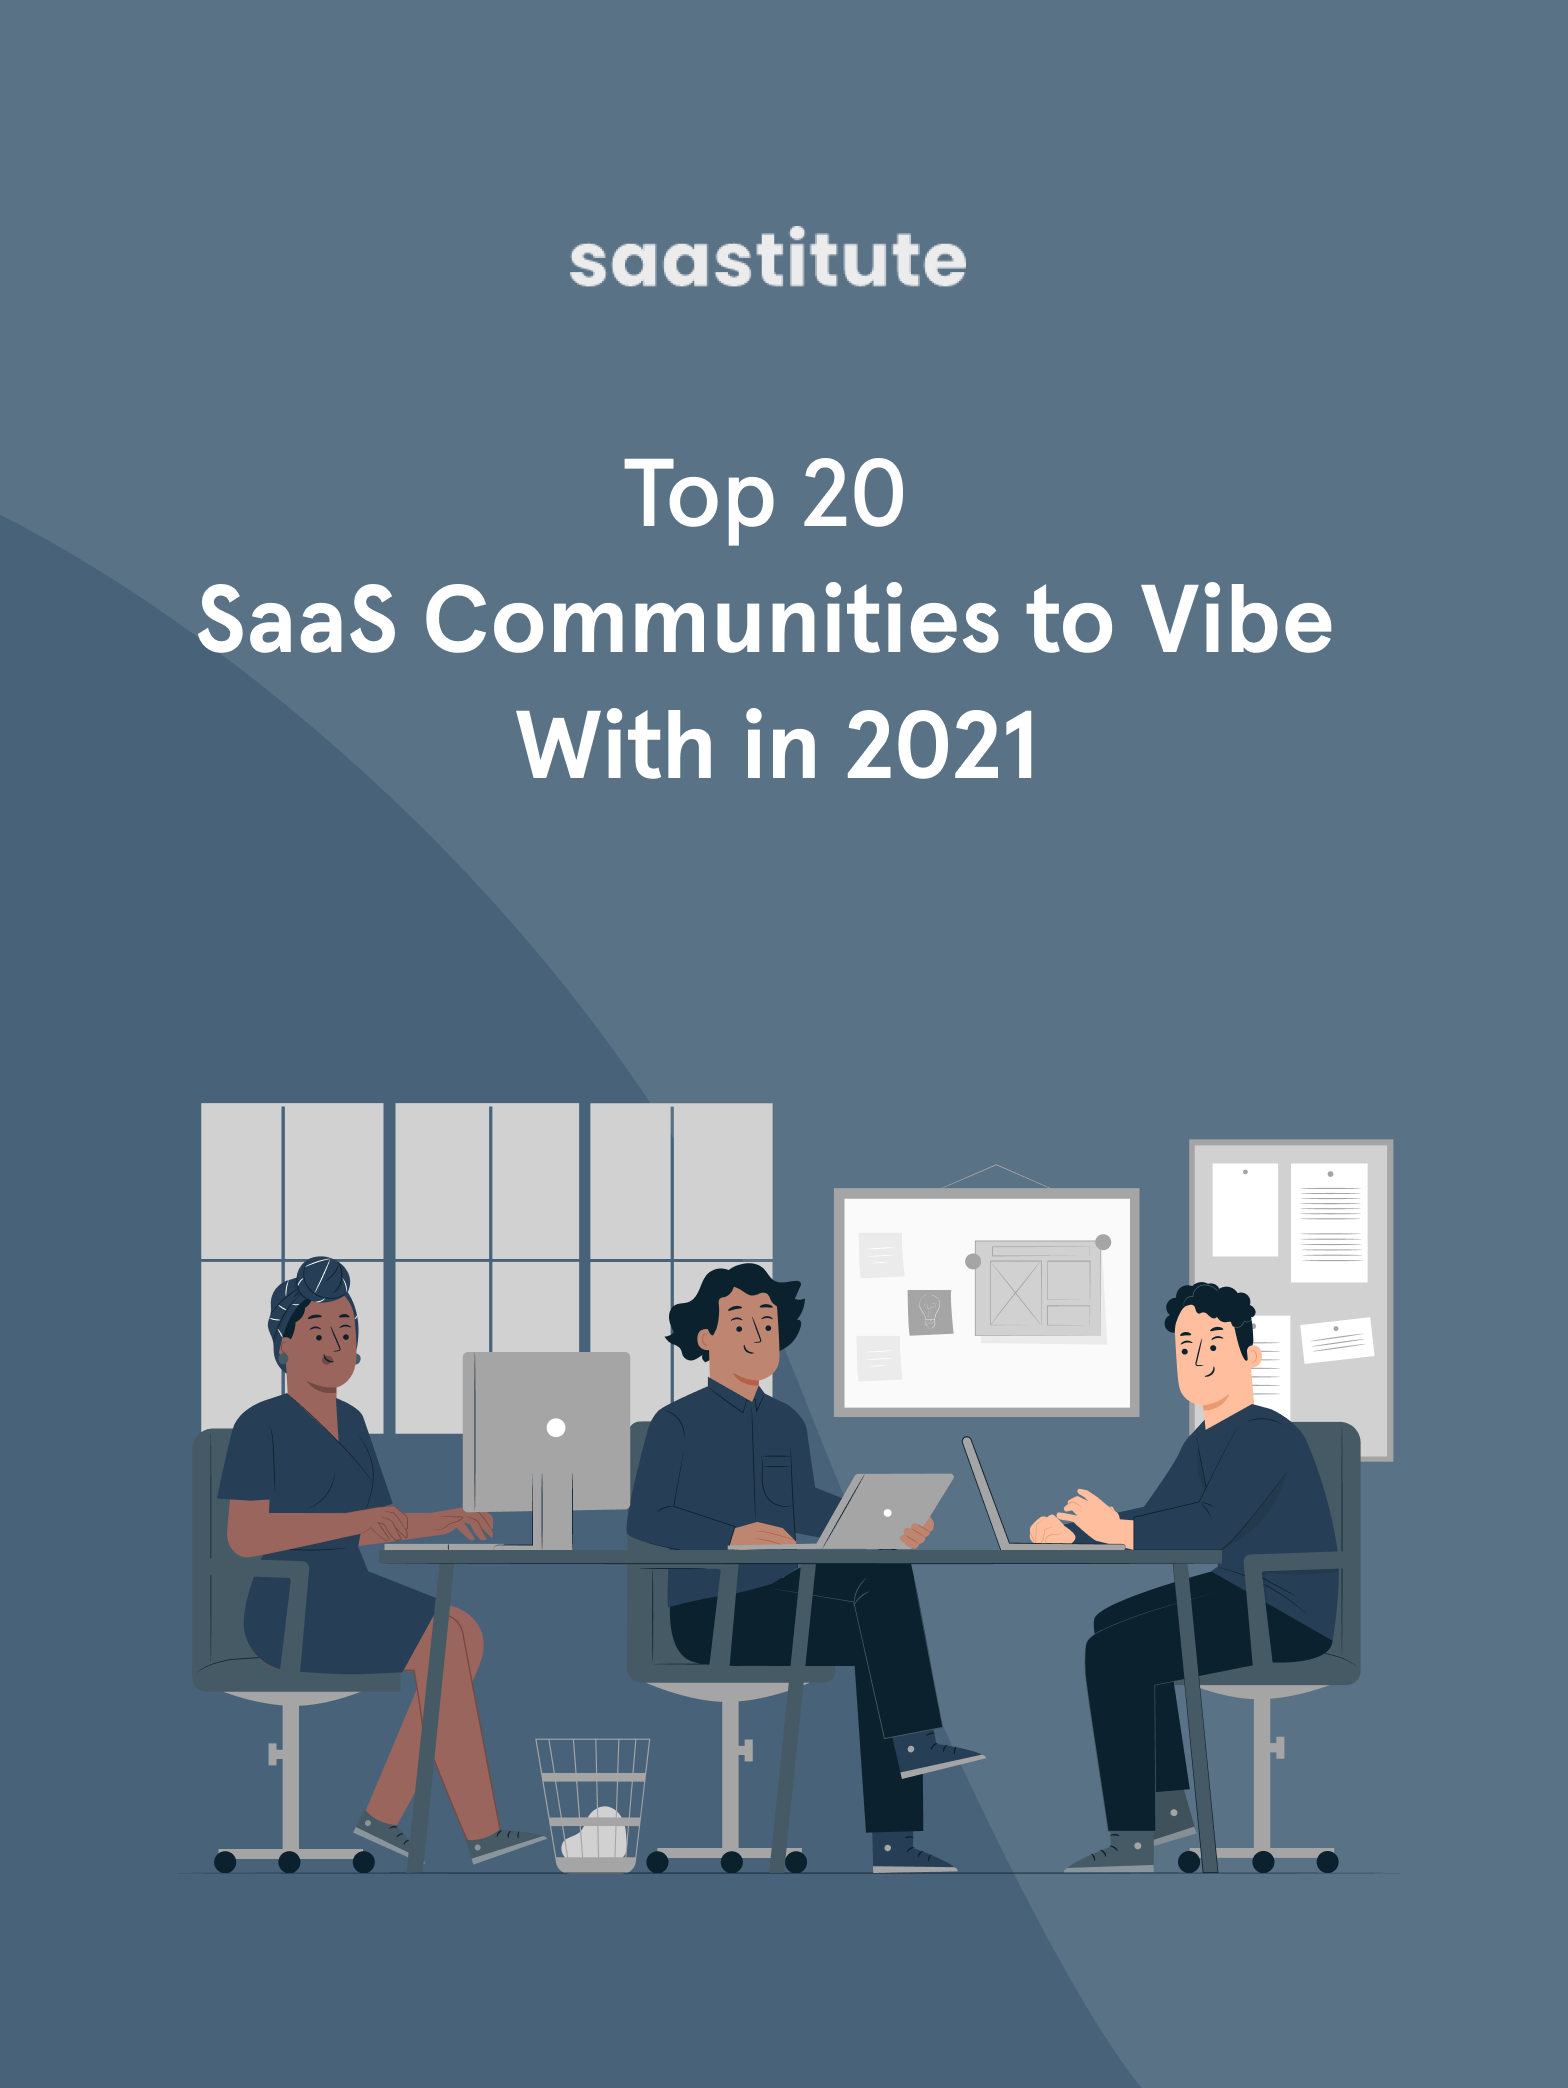 Top 20 SaaS Communities to Vibe With in 2021